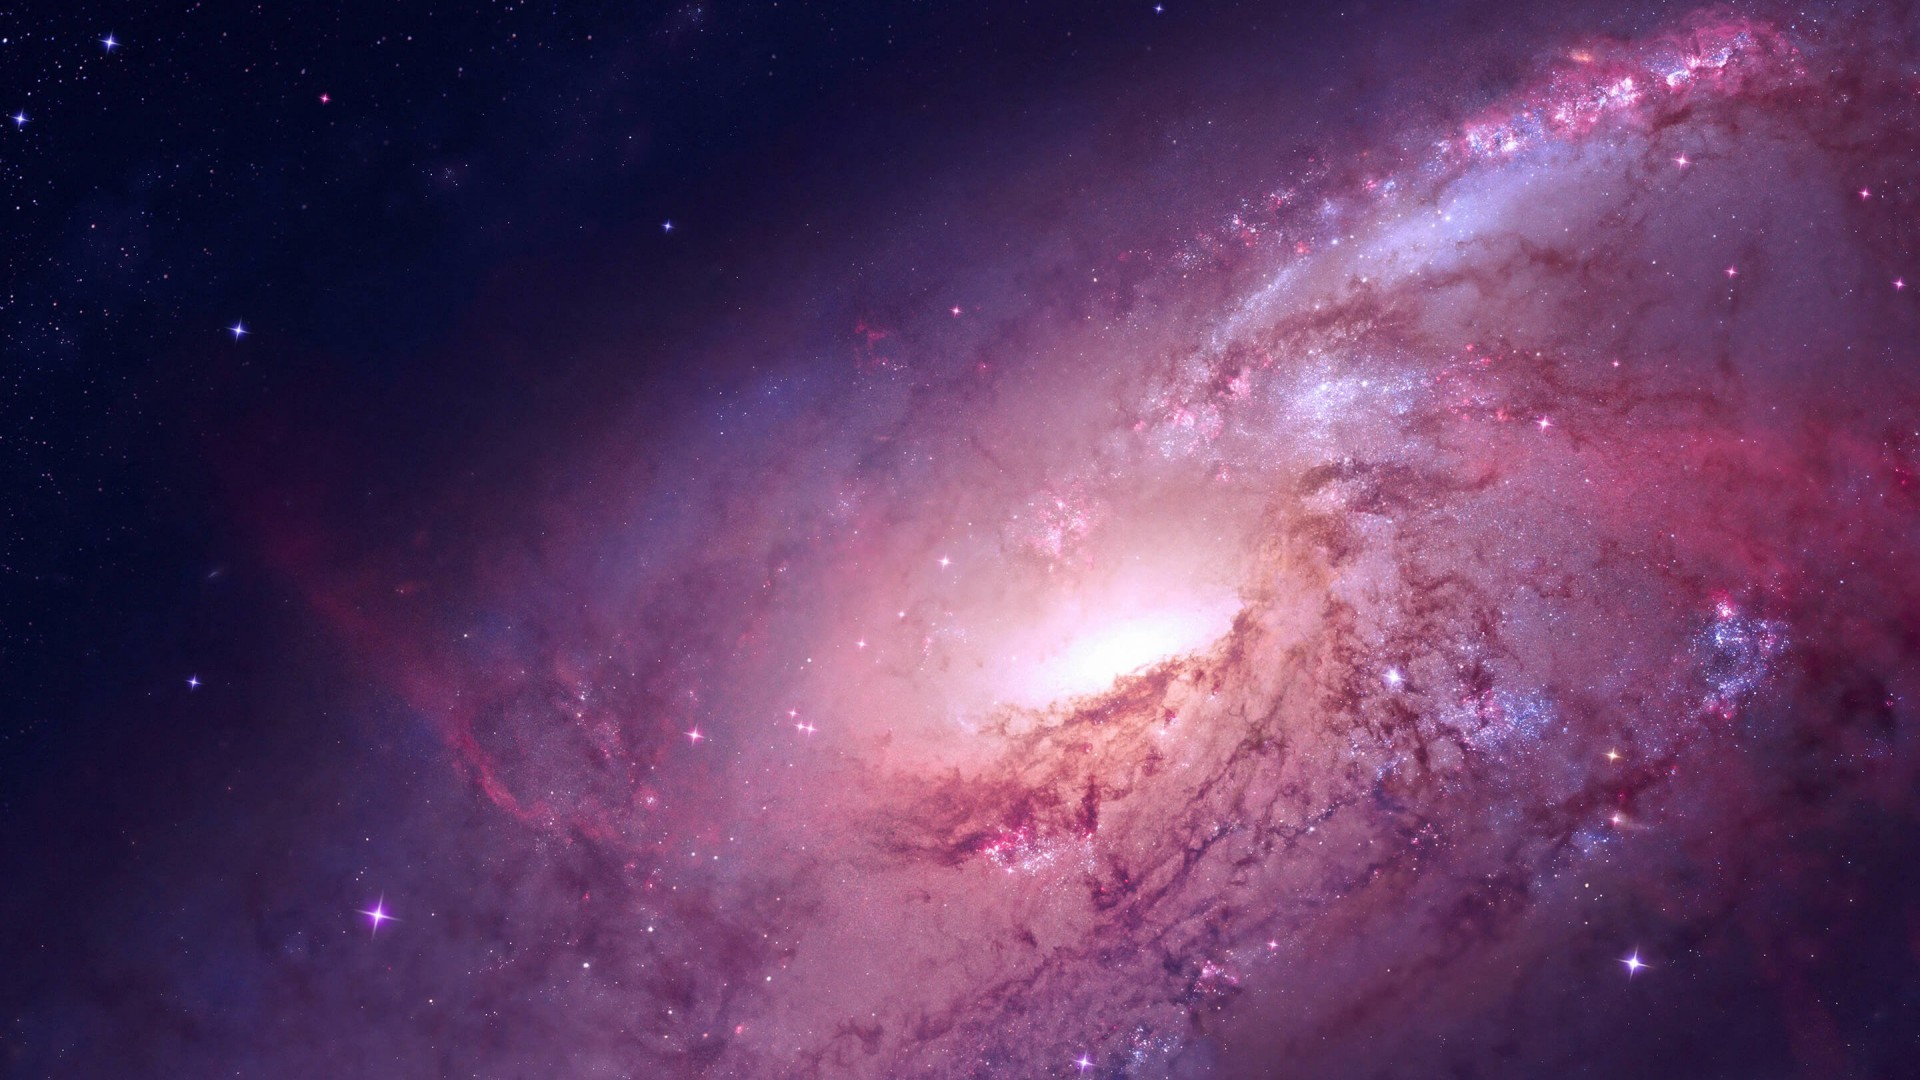 Galaxy M106 Wallpaper for Desktop 1920x1080